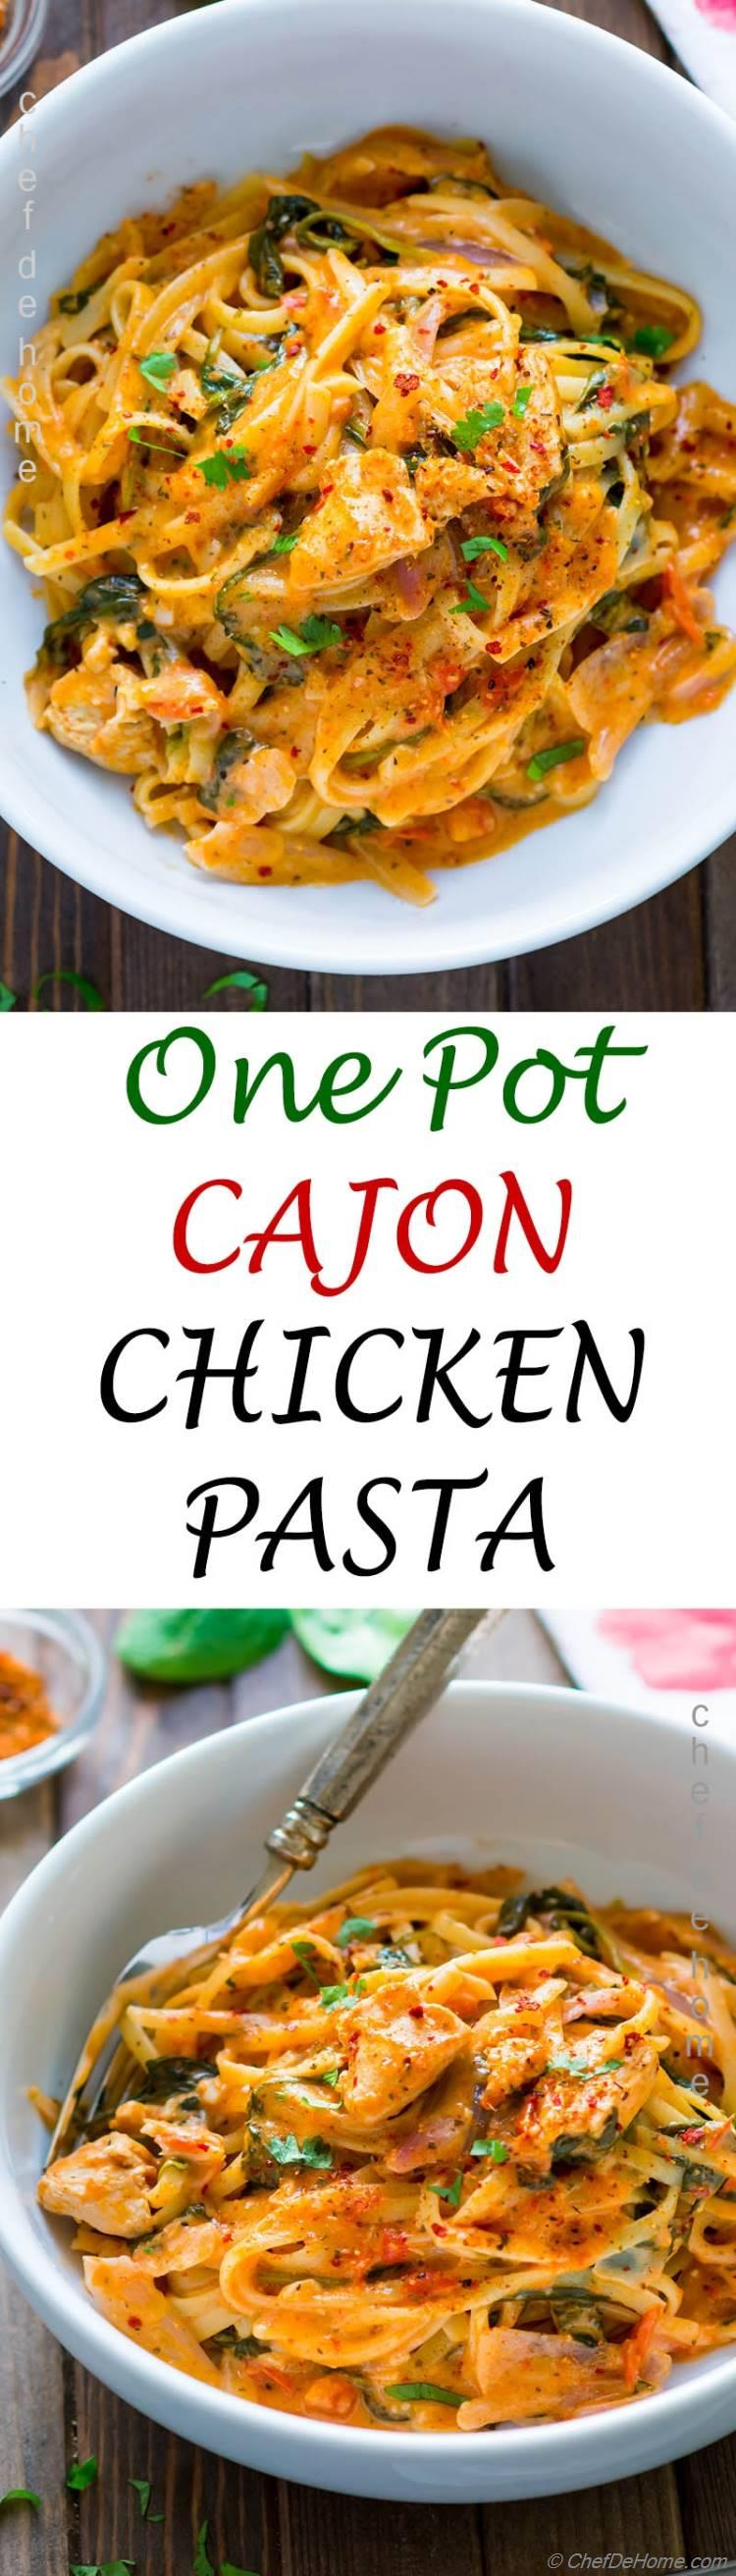 Easy Chicken and Pasta Dinner with Cajon seasoned chicken spaghetti and creamy cajon pasta sauce all prepared in one pot | chefdehome.com